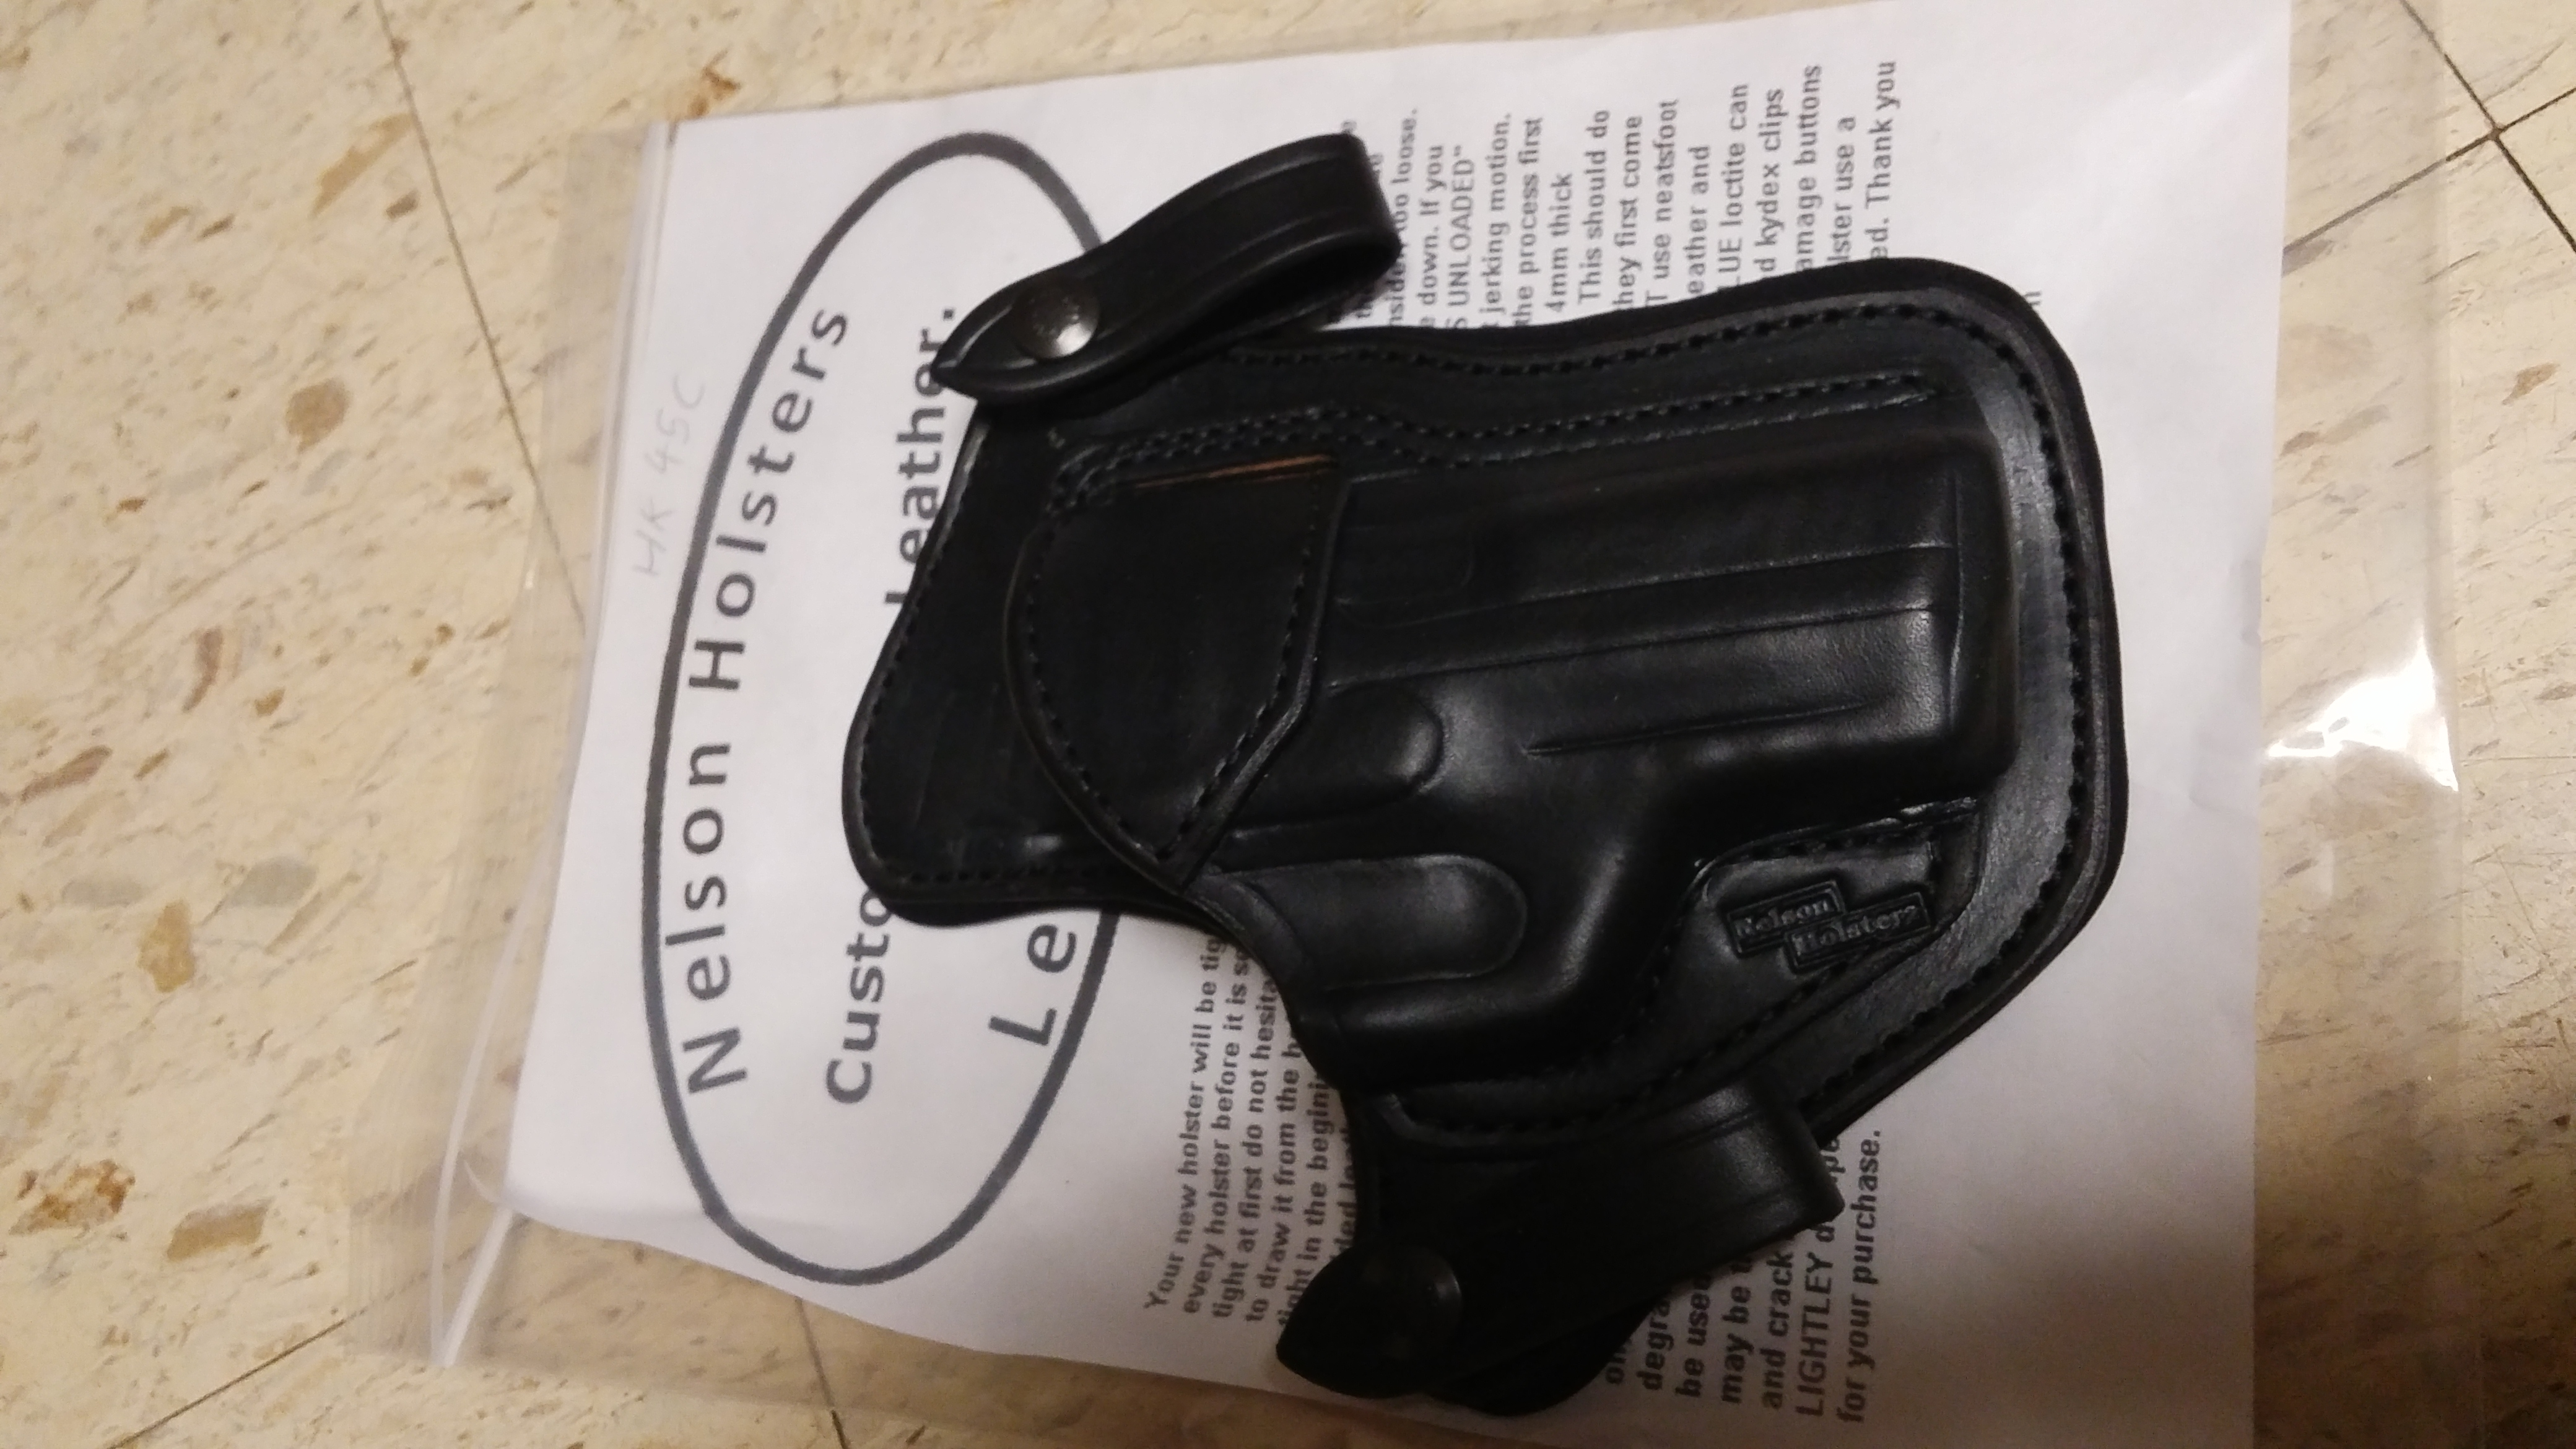 2 Nelson stealth holsters for sale-hk45c.jpg